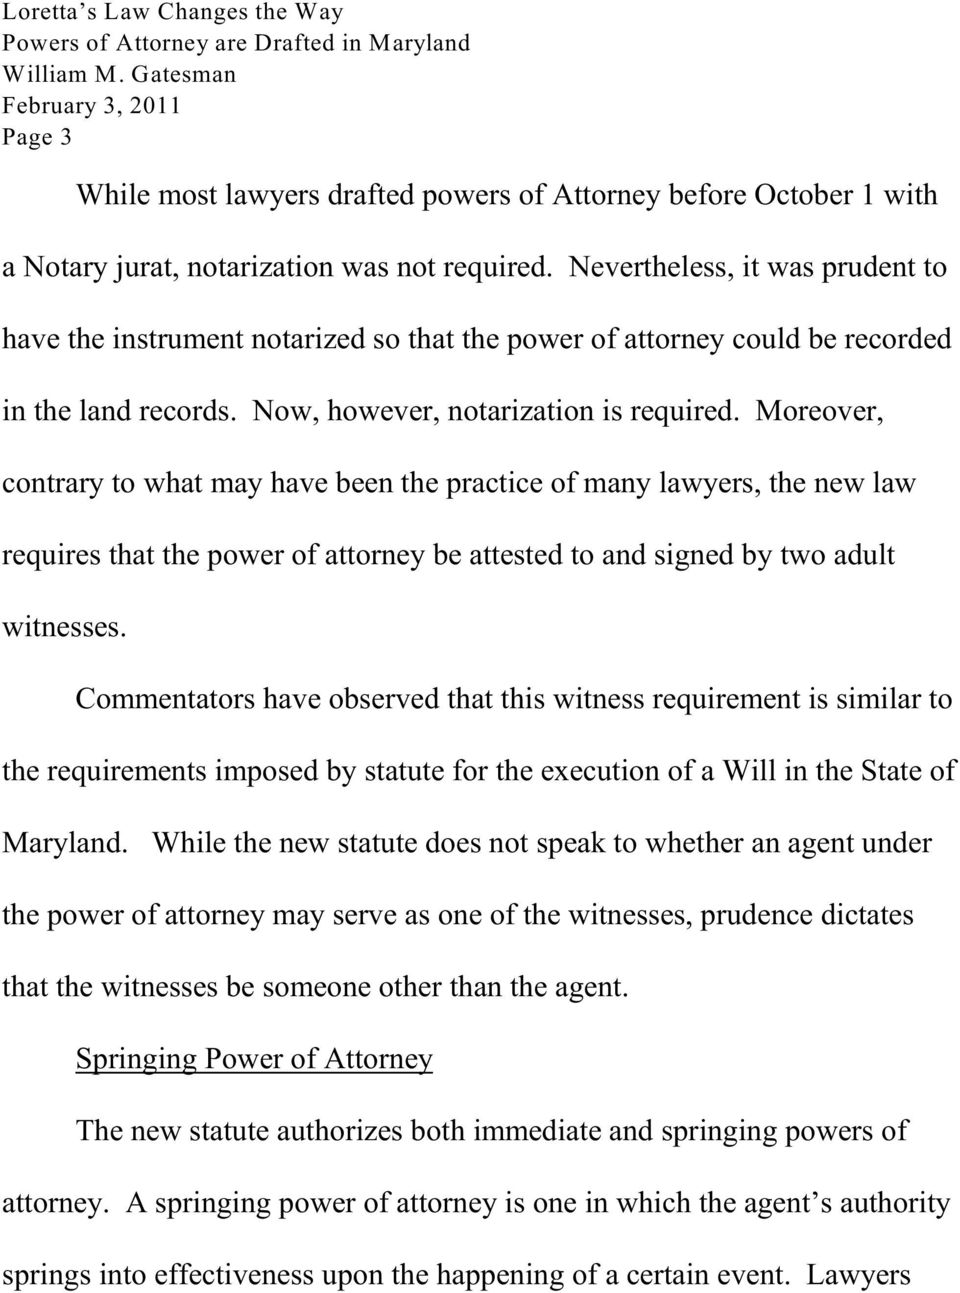 Moreover, contrary to what may have been the practice of many lawyers, the new law requires that the power of attorney be attested to and signed by two adult witnesses.